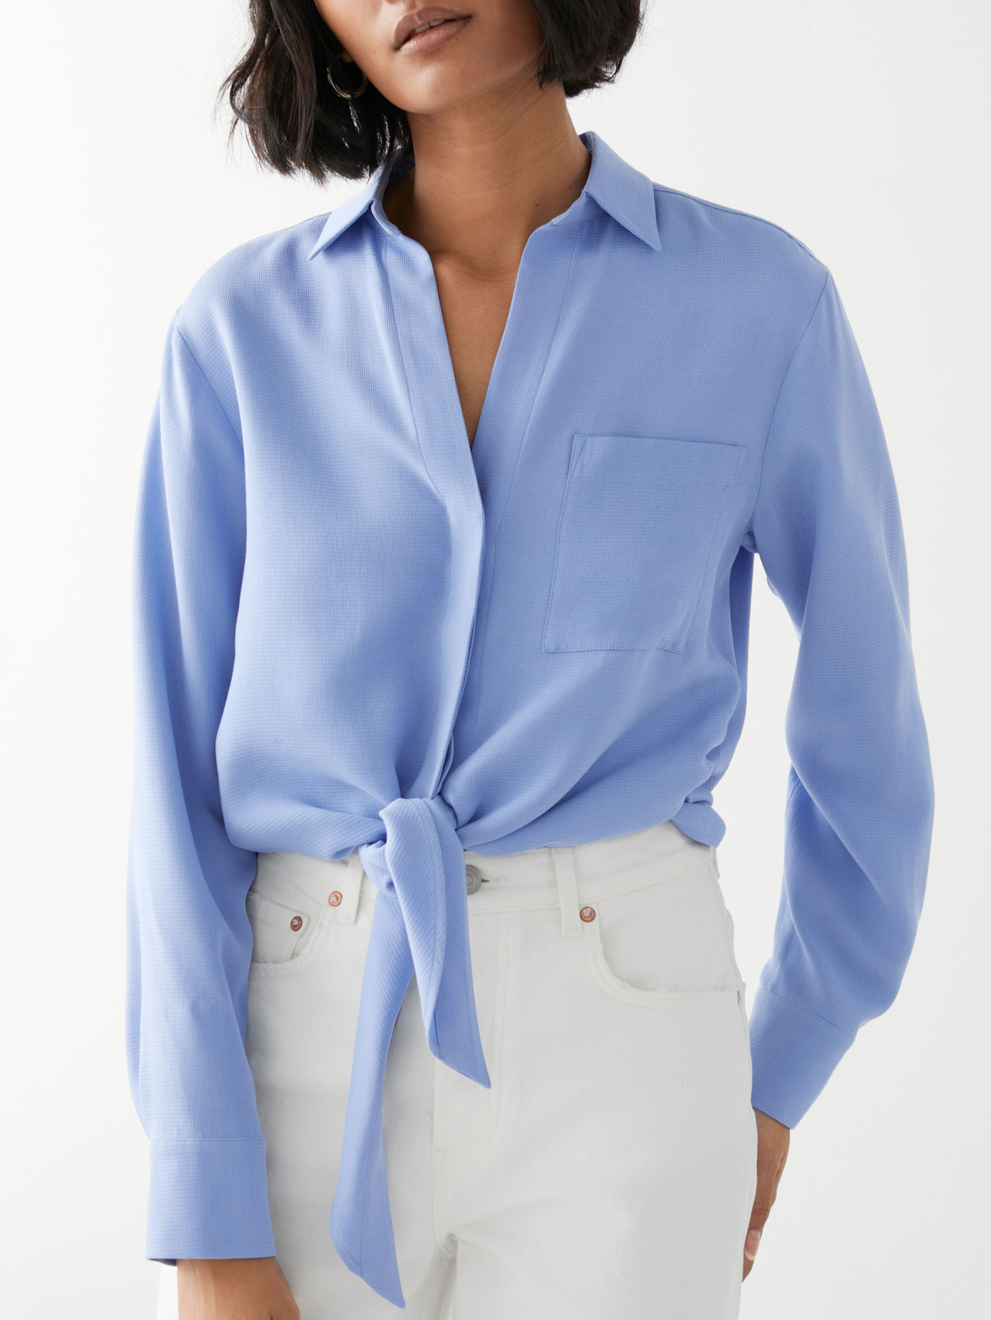 blue shirt with knot